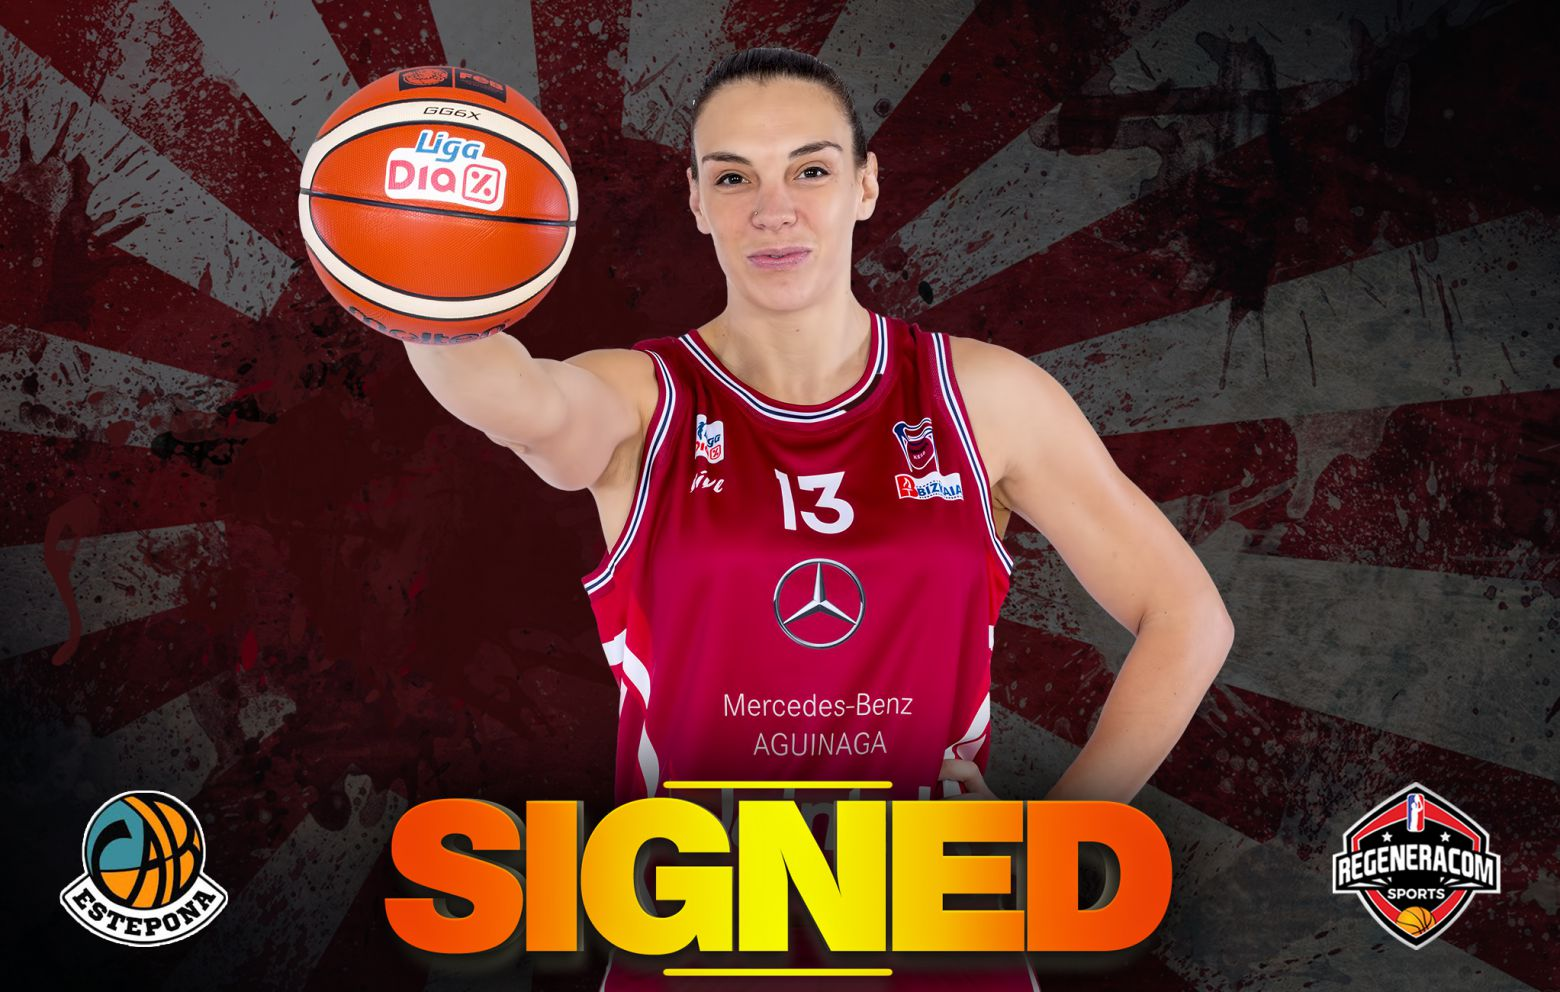 LUCI PASCUA has signed with Estepona